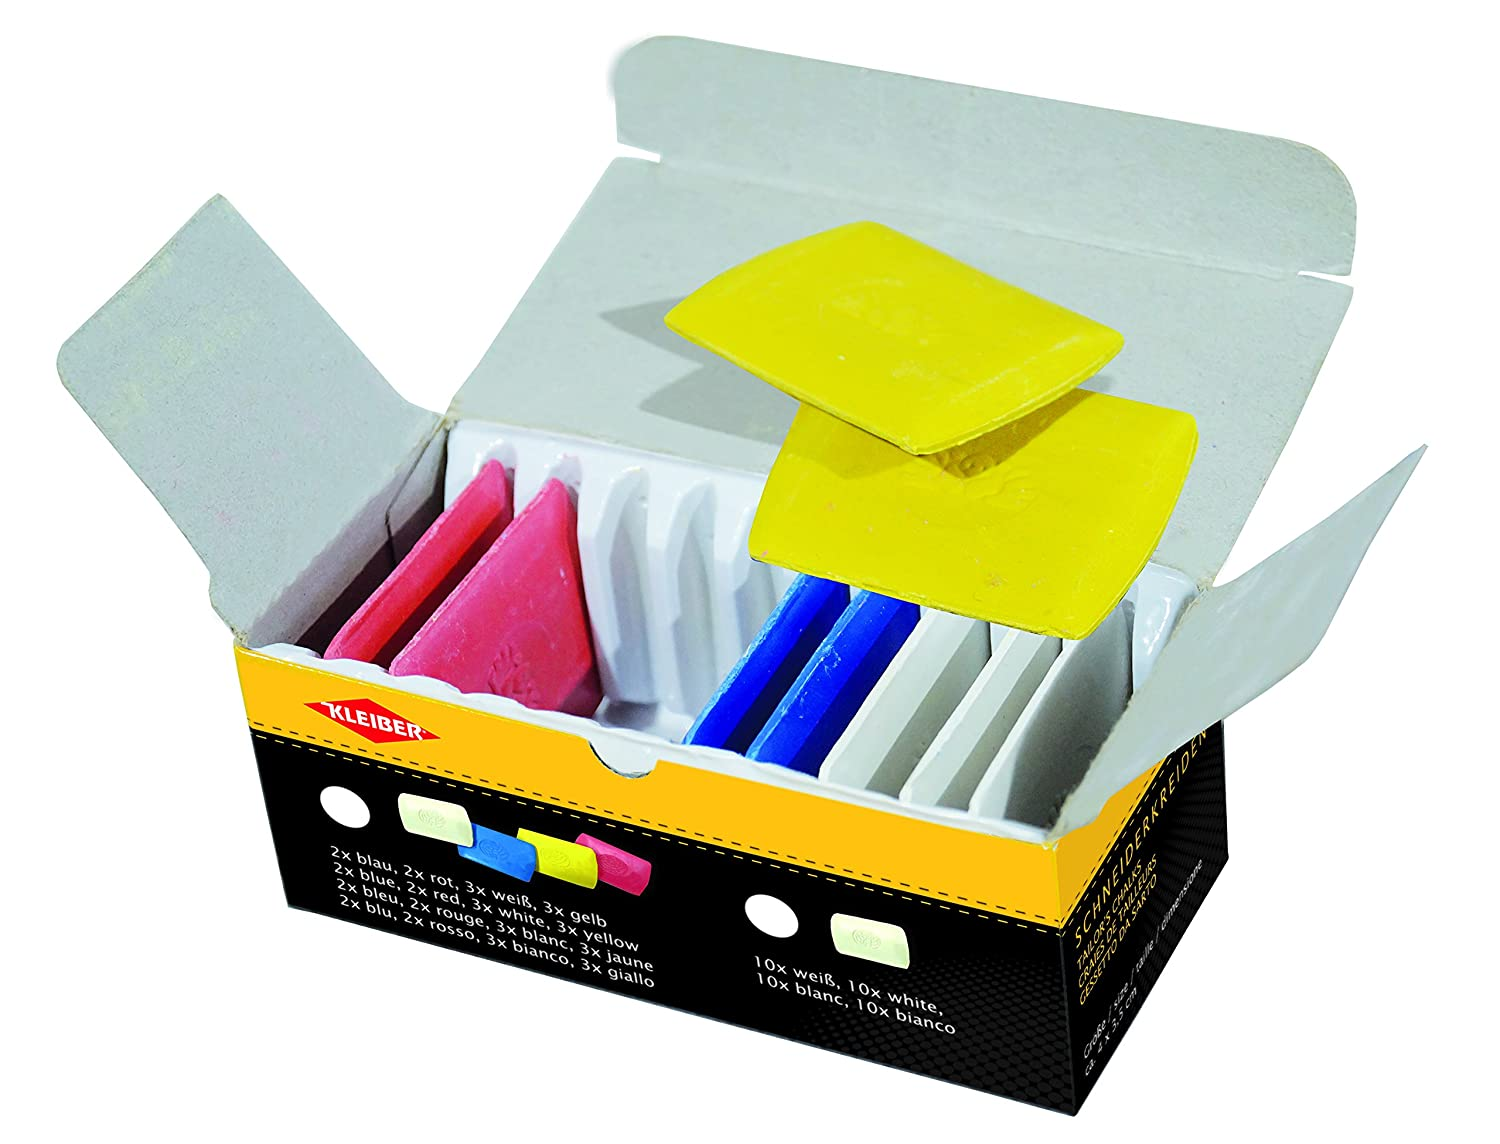 Kleiber Tailor's Chalk Triangles, White/Yellow/Red/Blue, Pack of 10